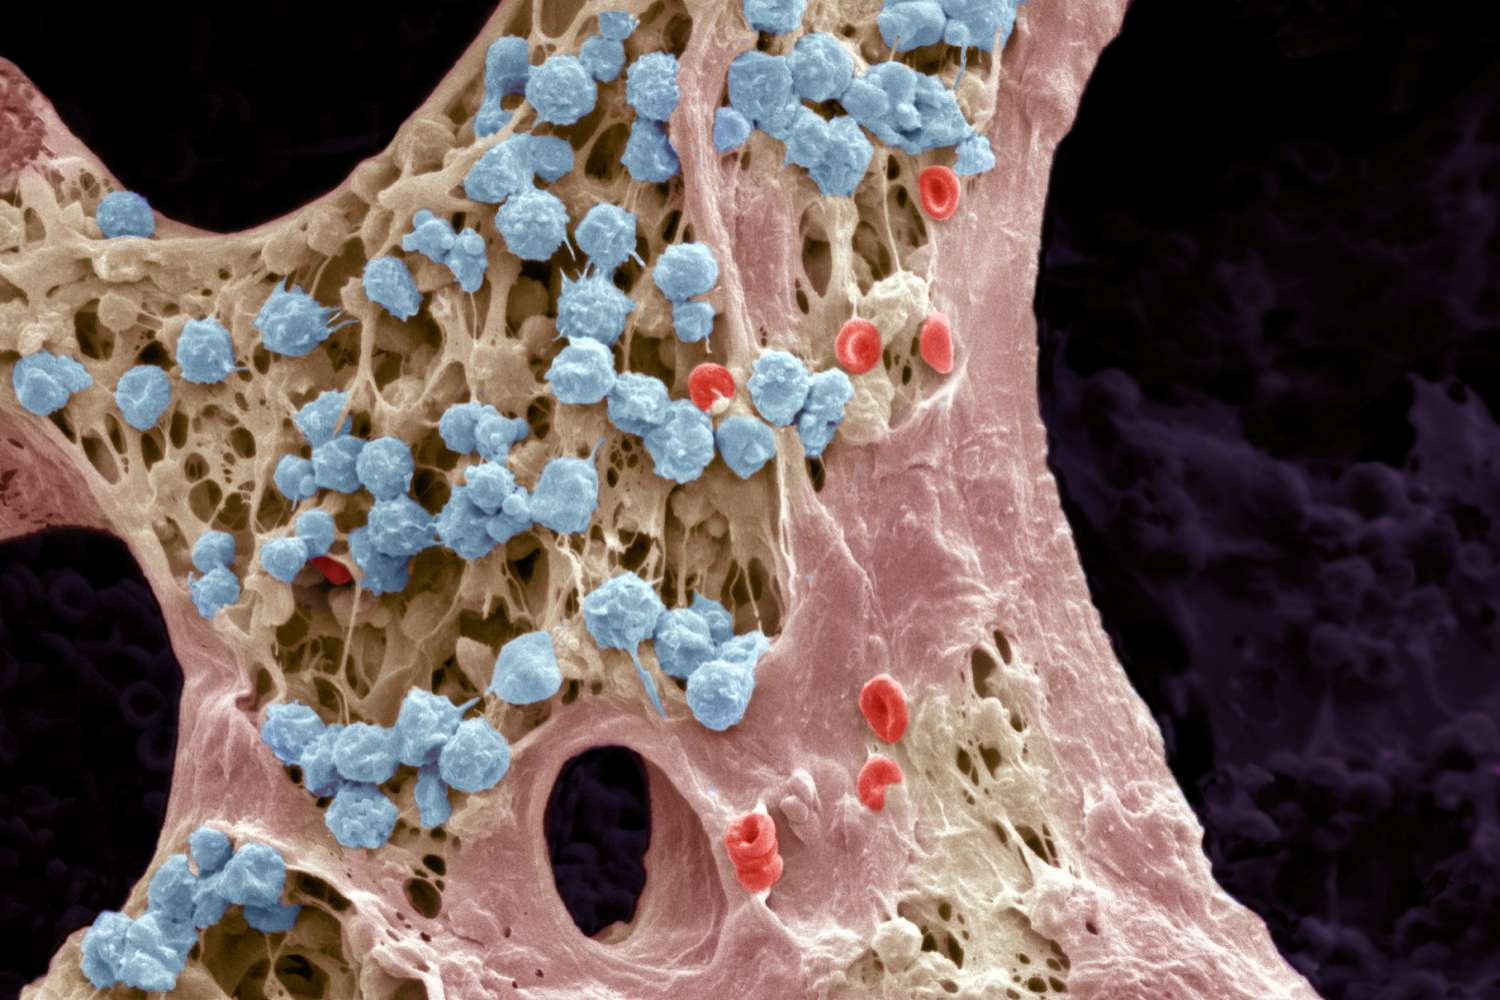 Red Blood Cells Function And Structure Human White Cell Diagram Overview Stock Bone Marrow Scanning Electron Micrograph Sem Is Where Production Takes Place Steve Gschmeissner Getty Images